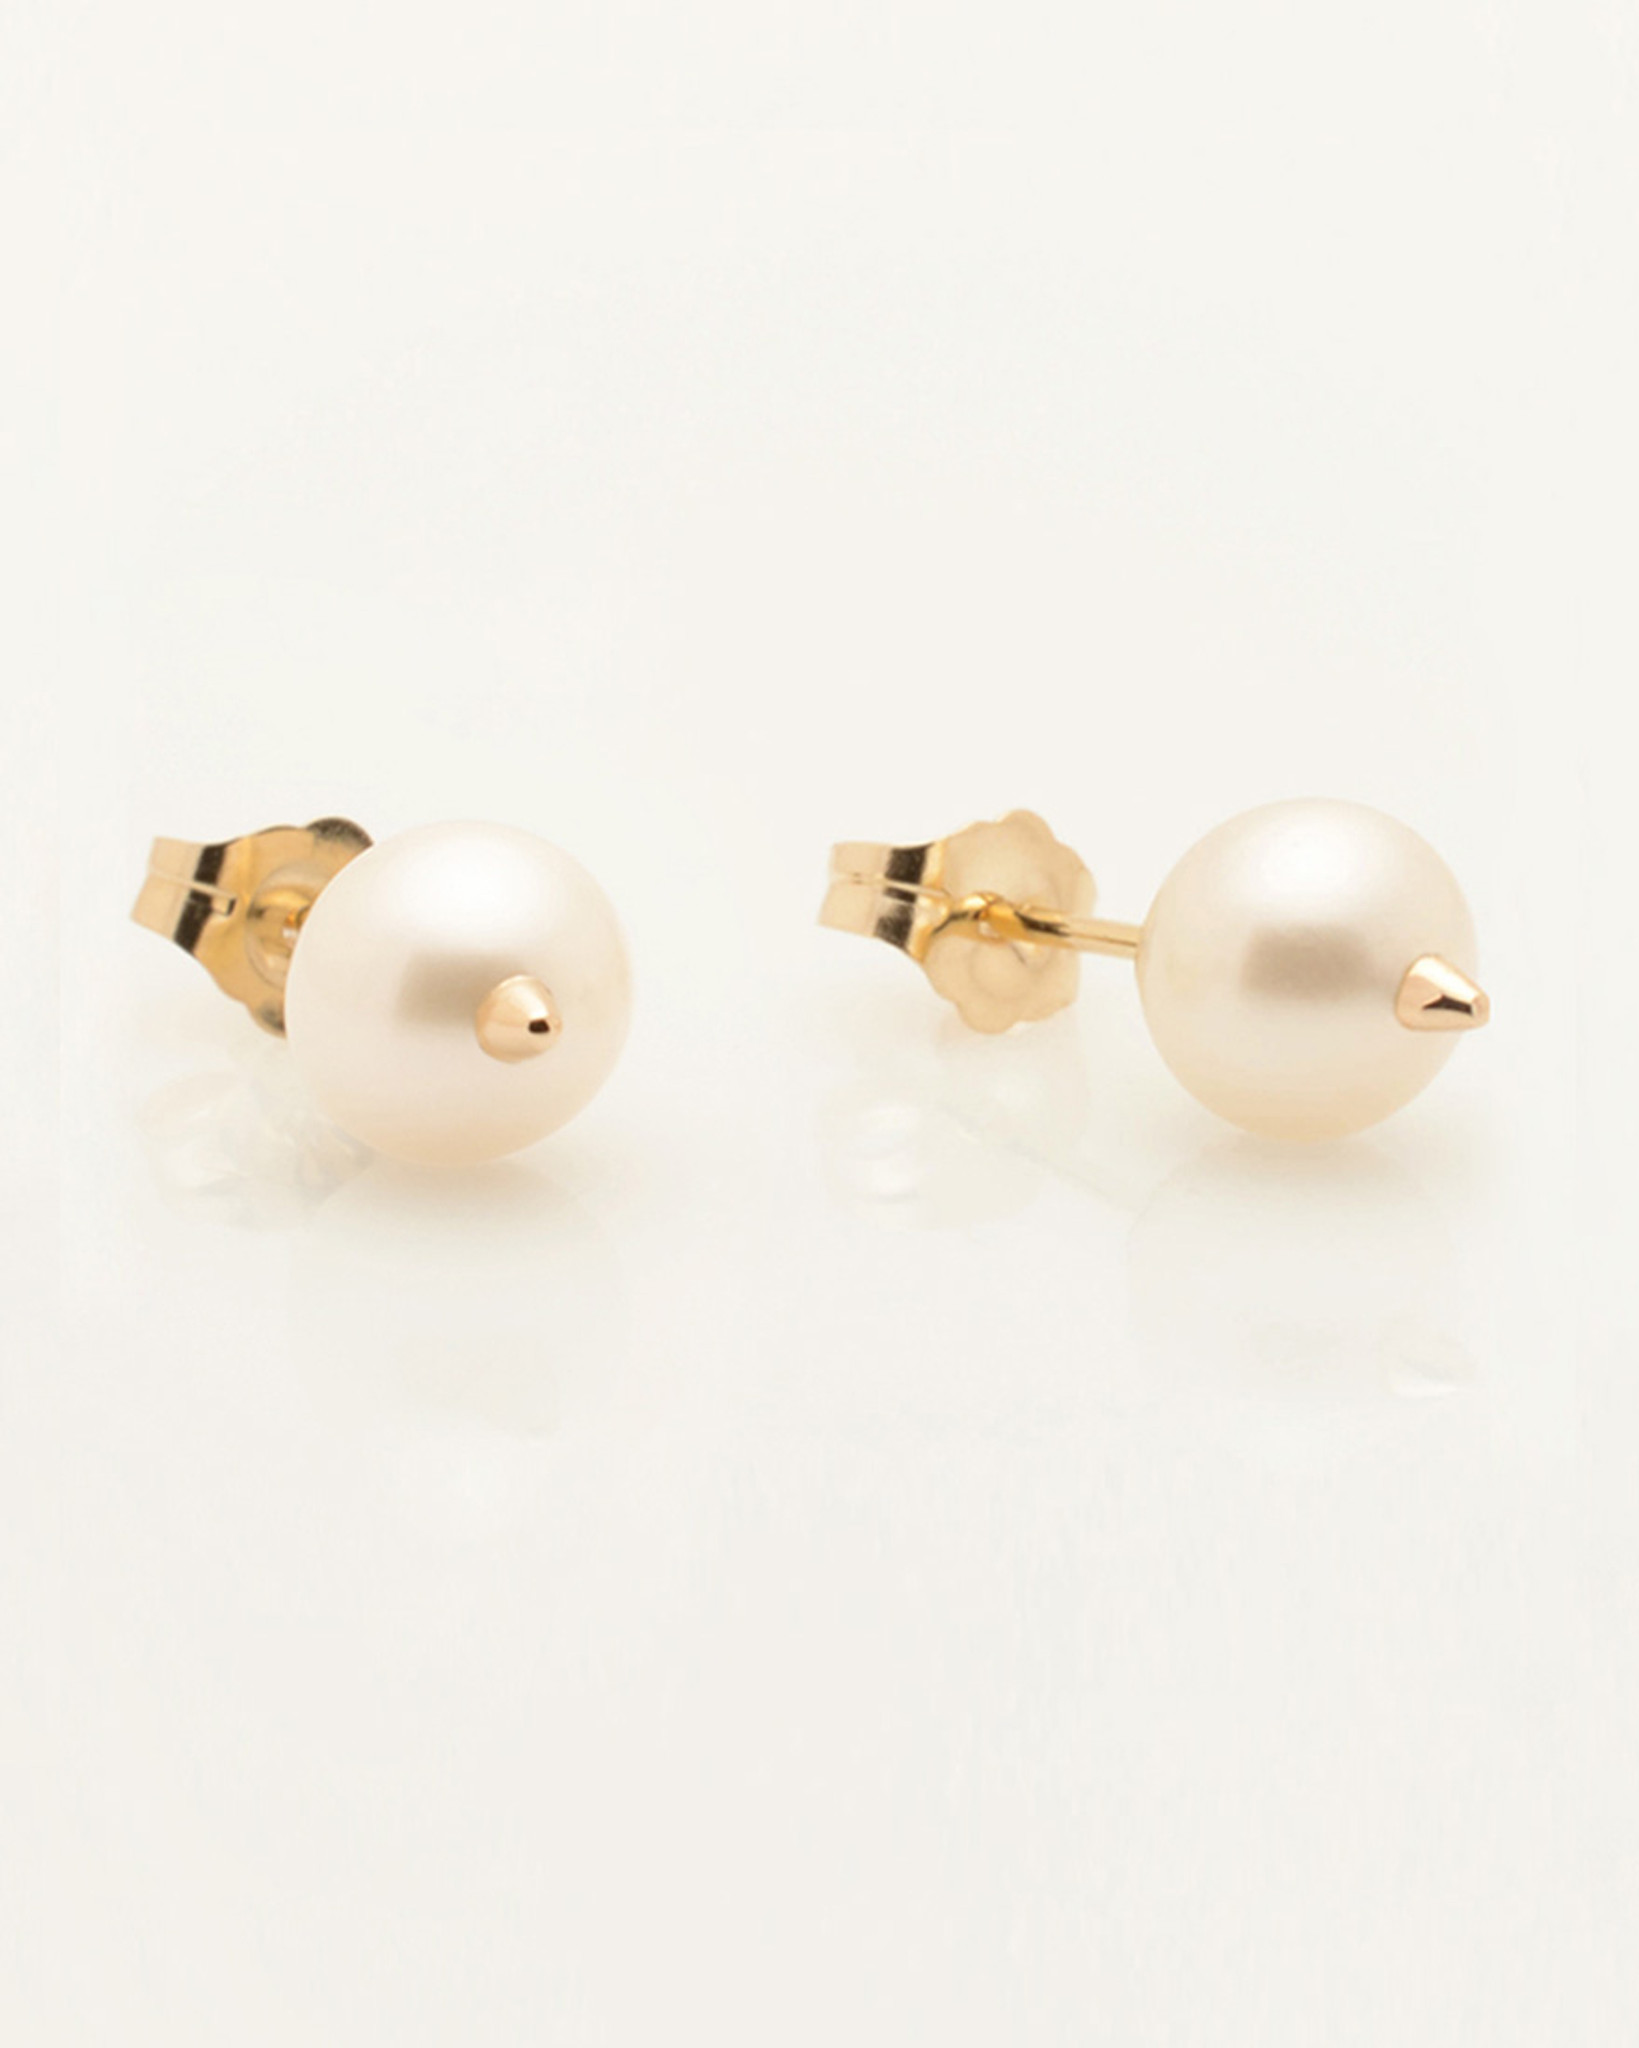 Cultured Freshwater Pearl Earrings with 14k Gold Spikes and Posts by Nektar De Stagni (6.5 mm)